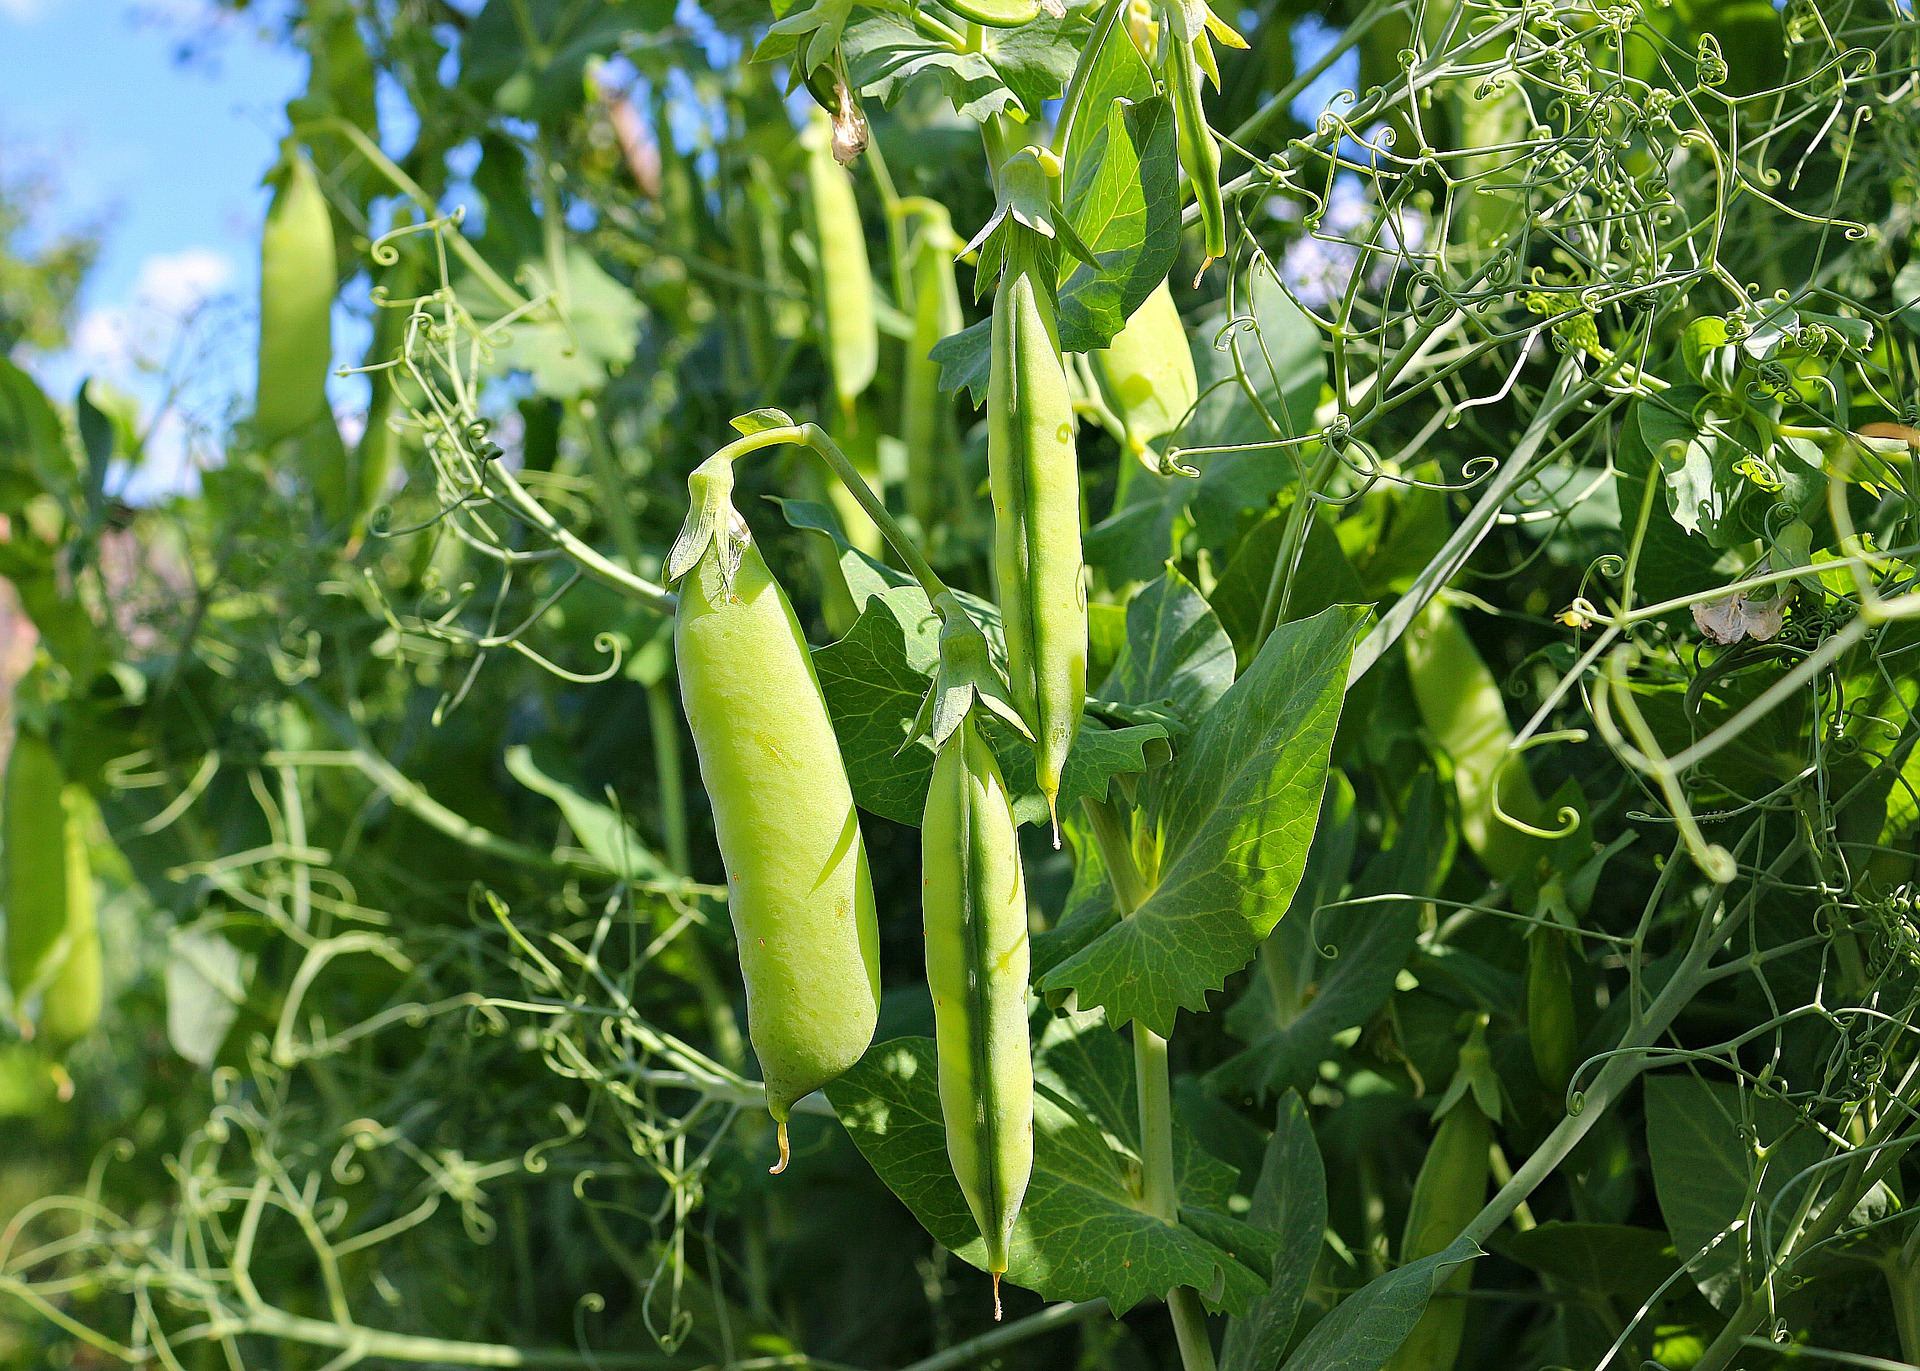 How to Grow Peas in Your Backyard